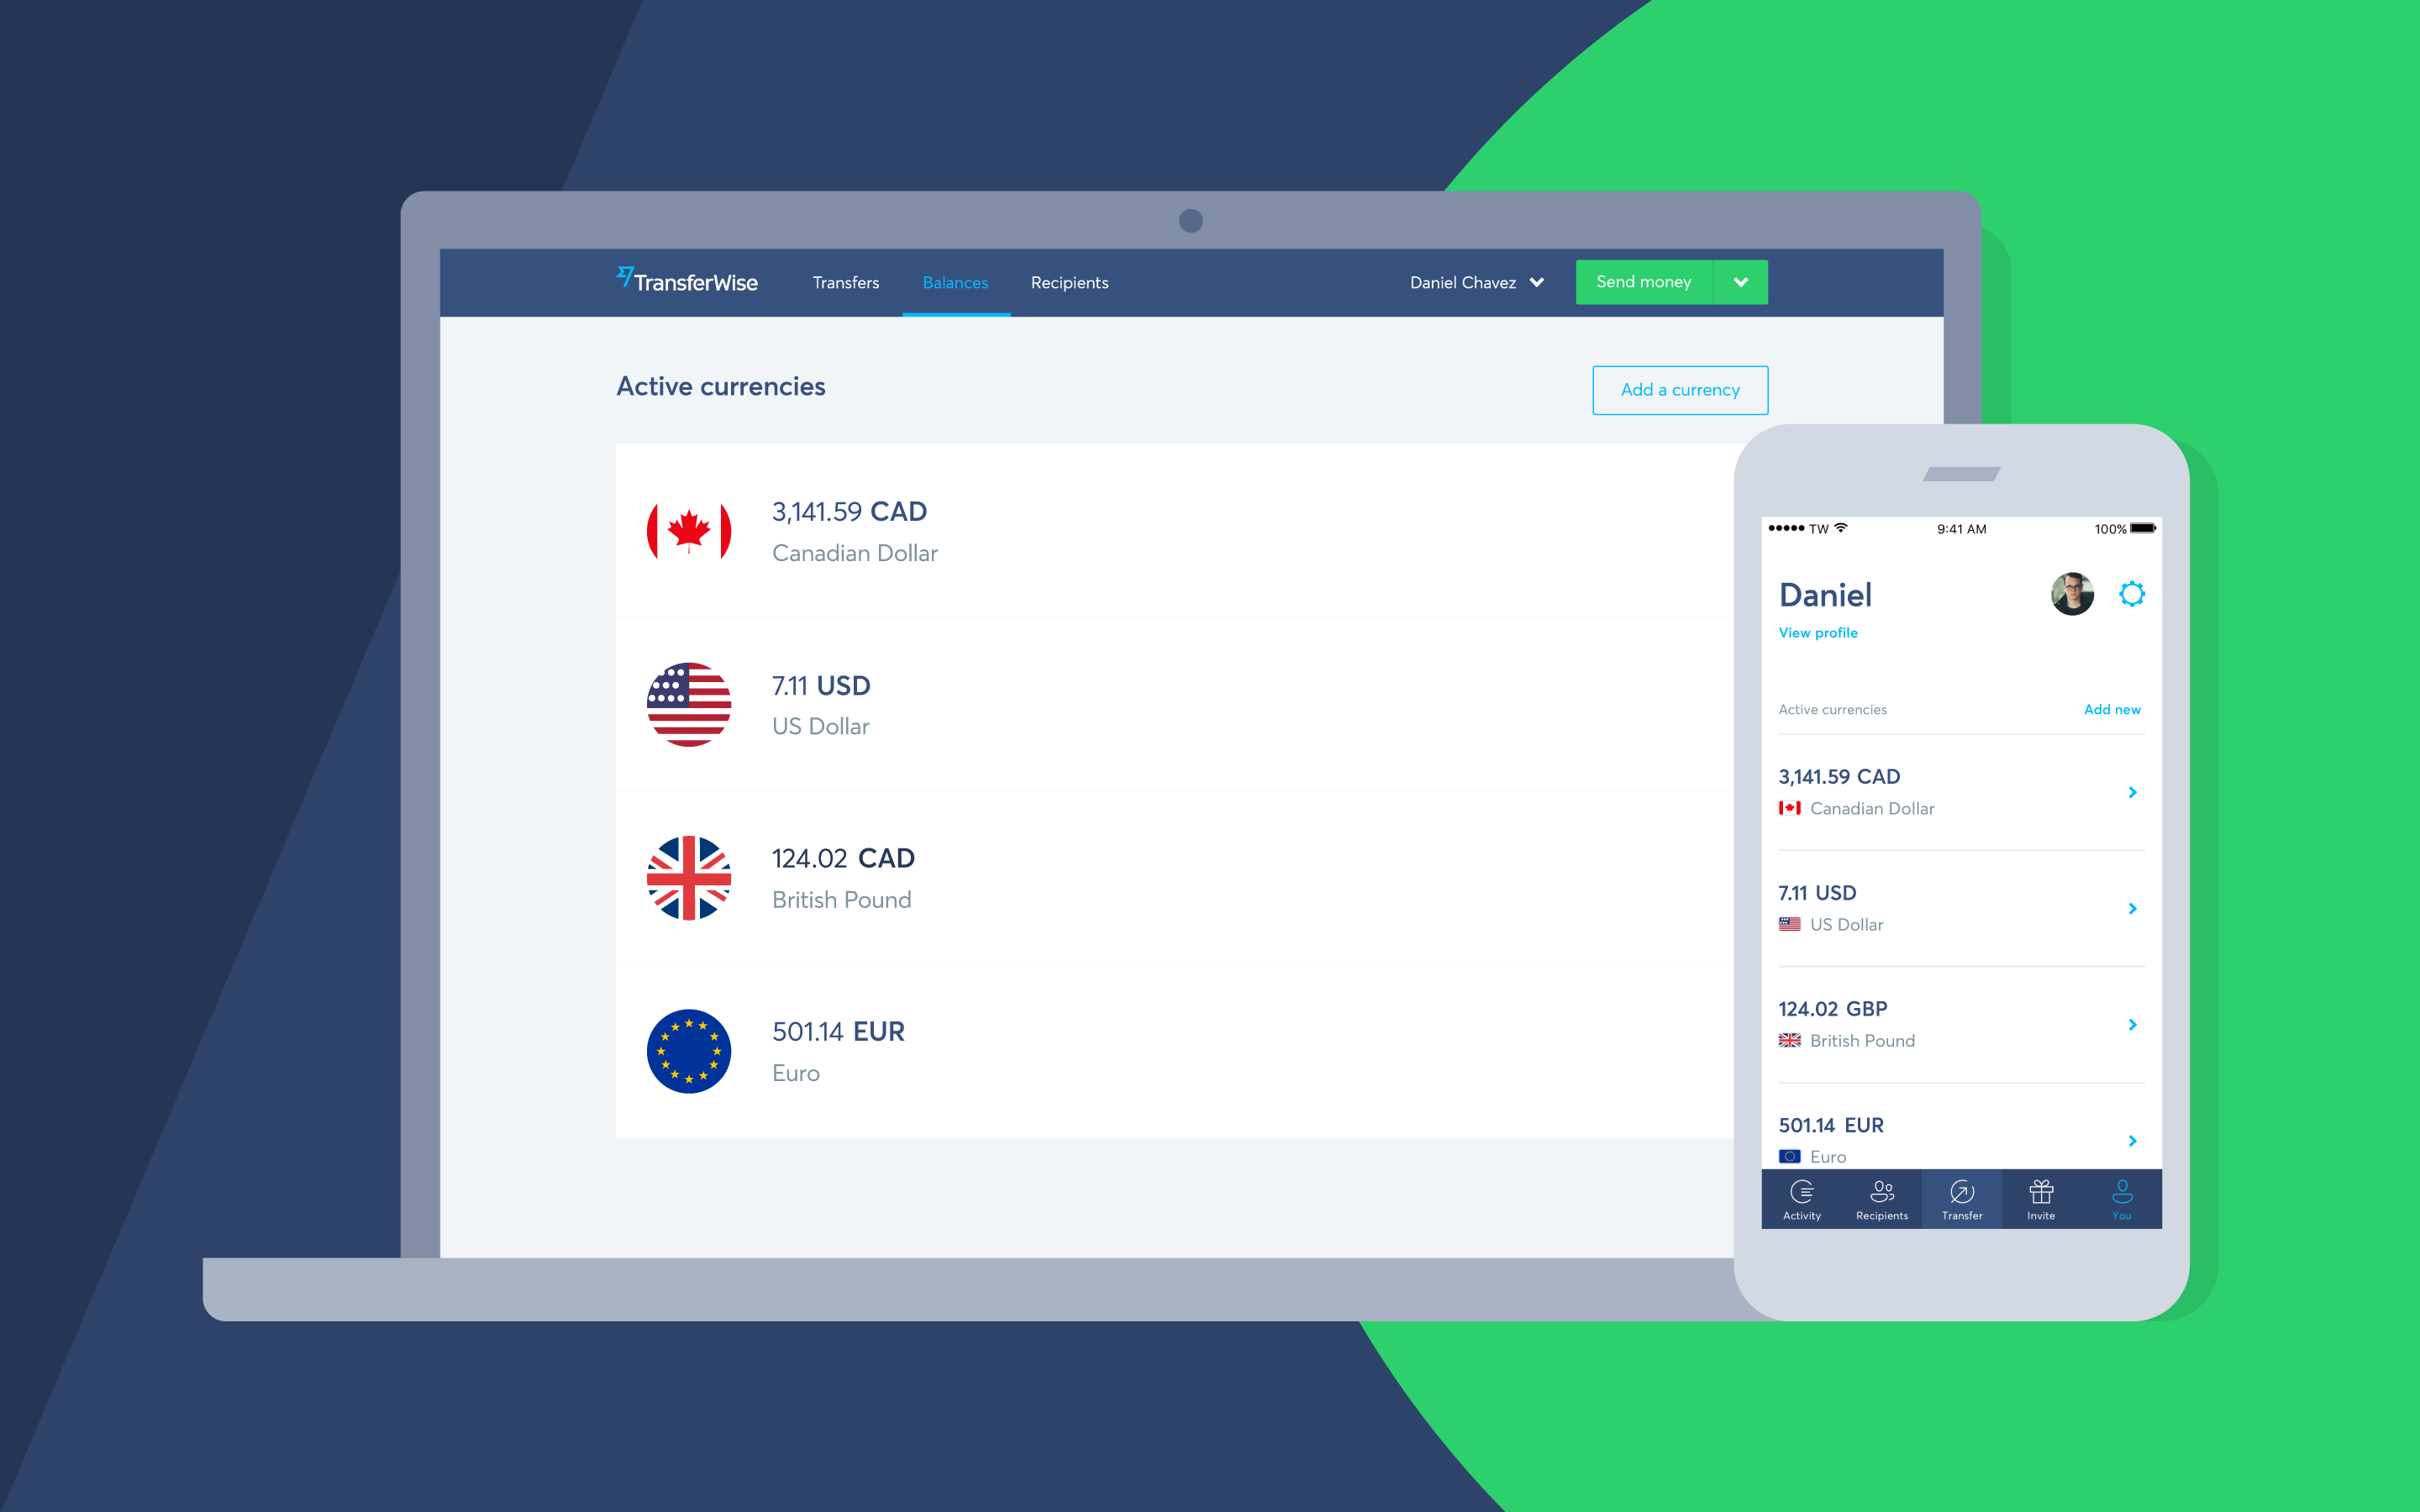 An image showing the TransferWise desktop and phone interface